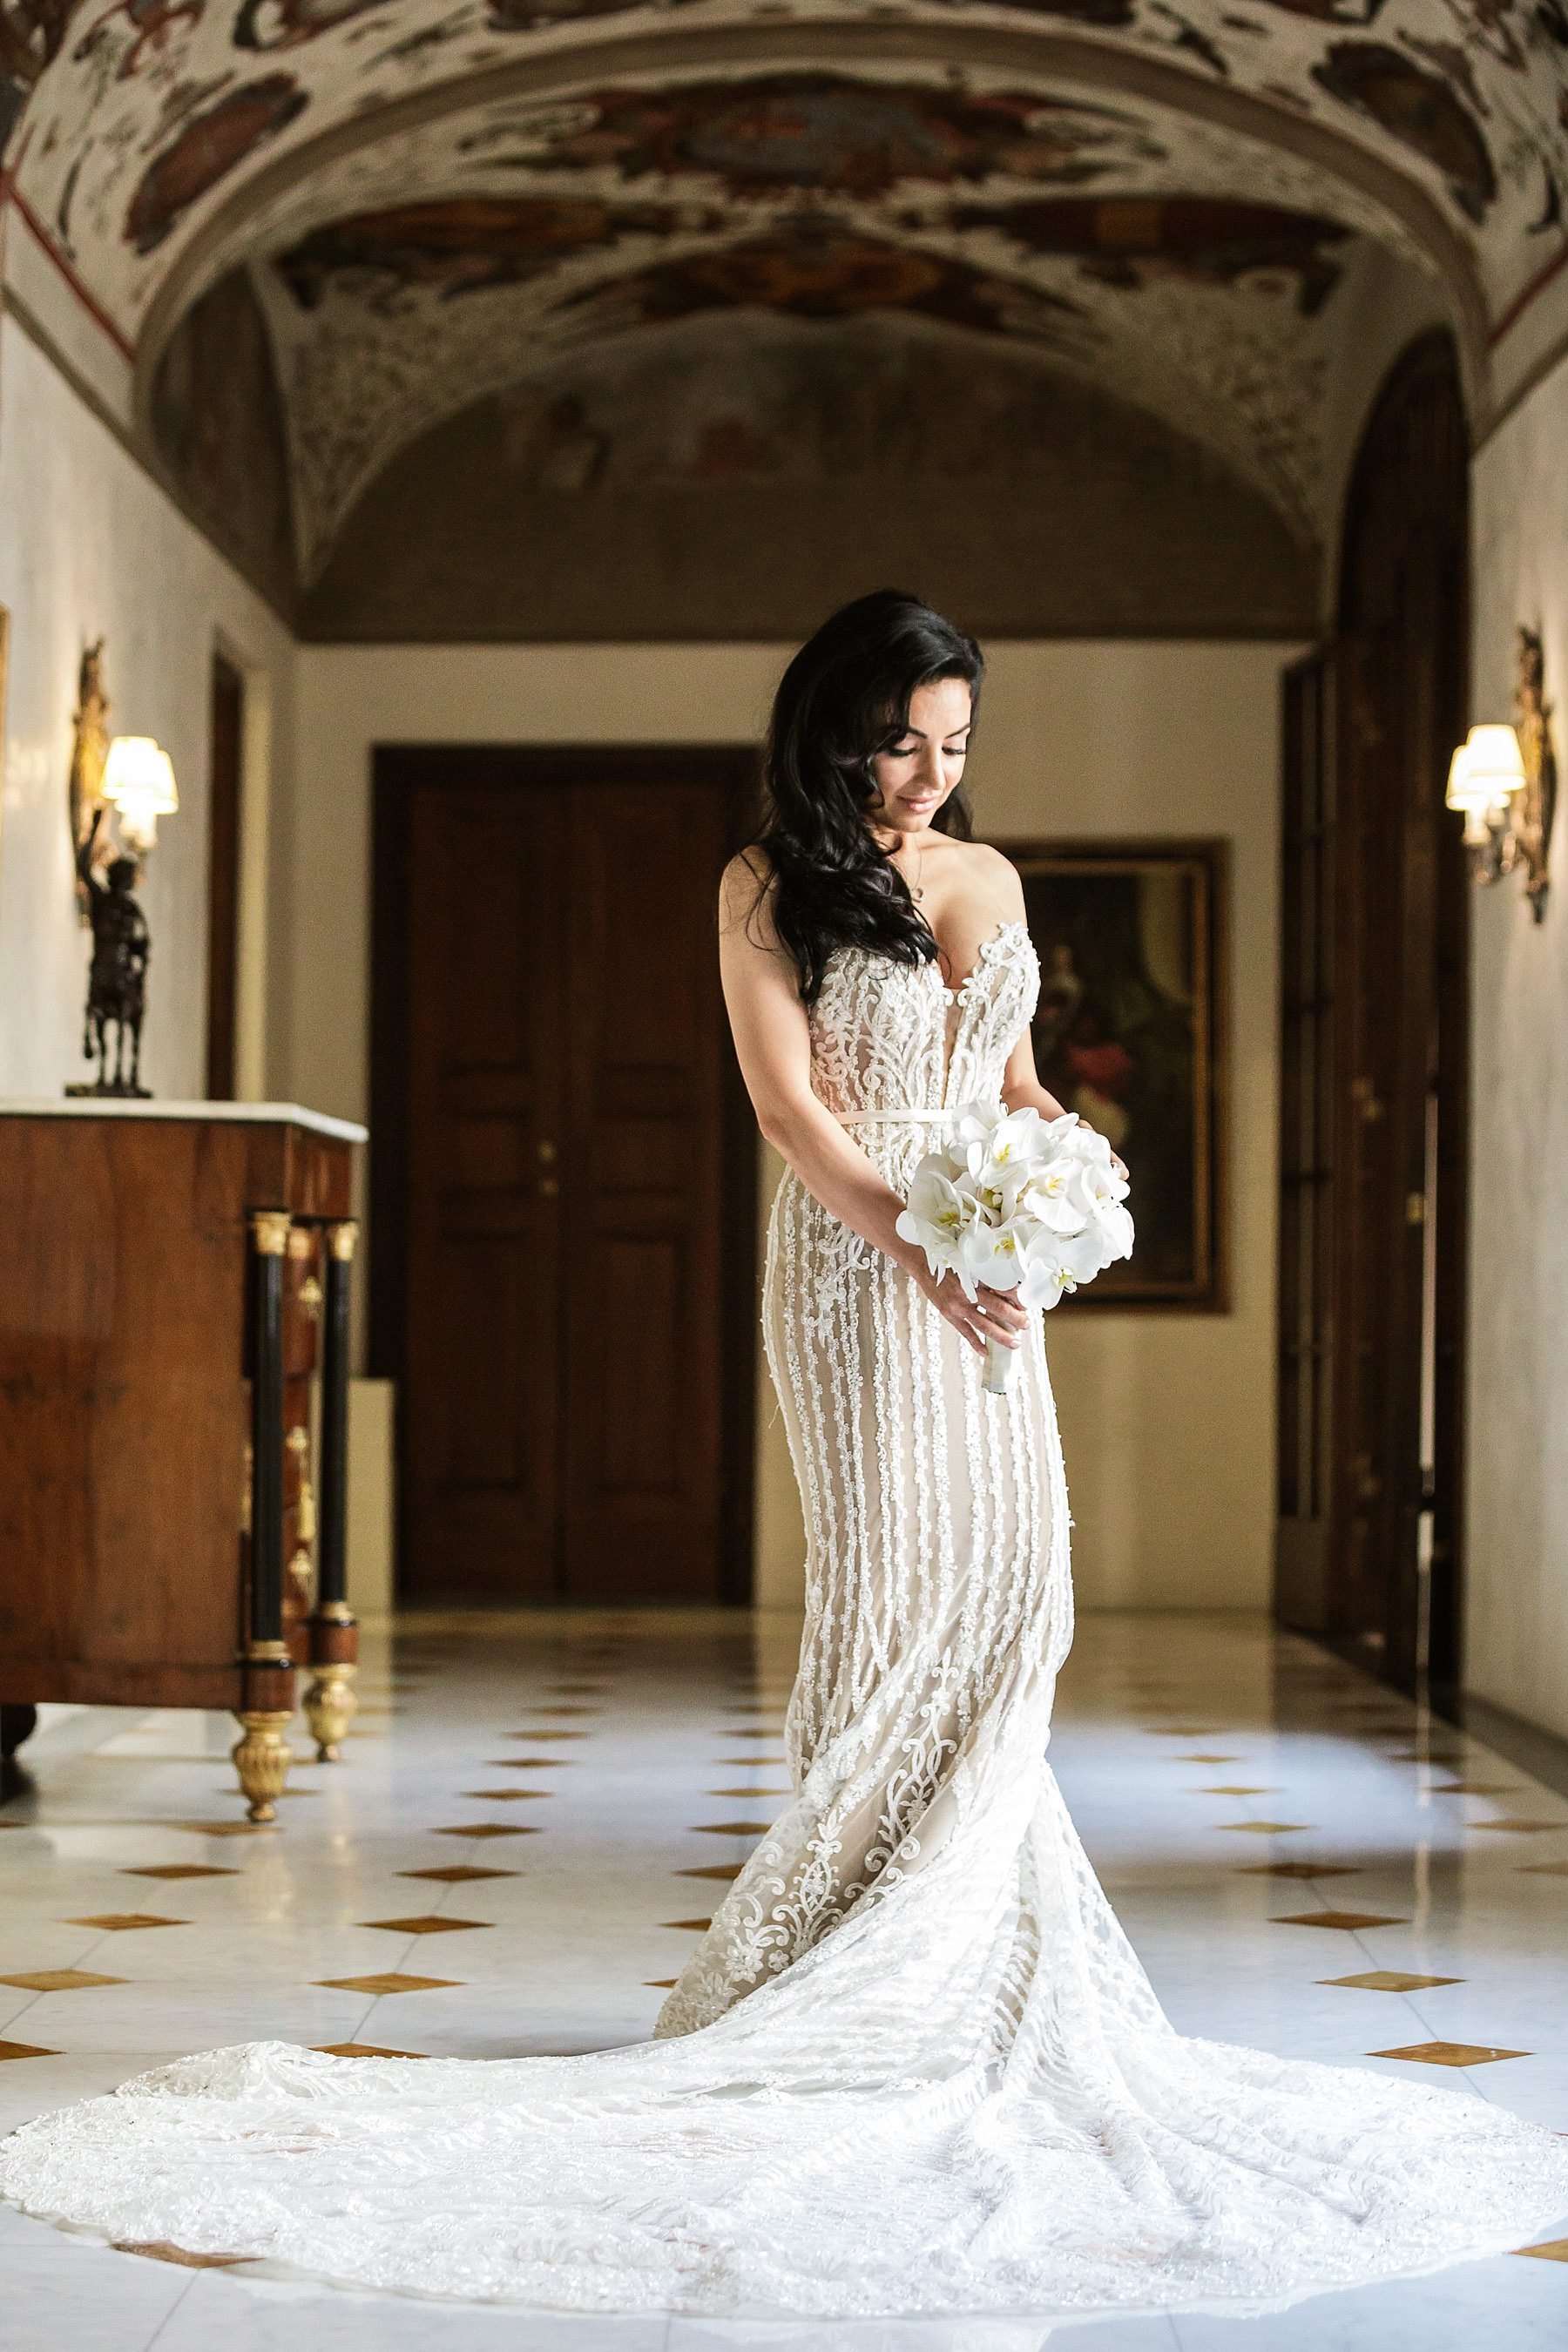 Bride portrait - destination wedding Four Seasons Florence